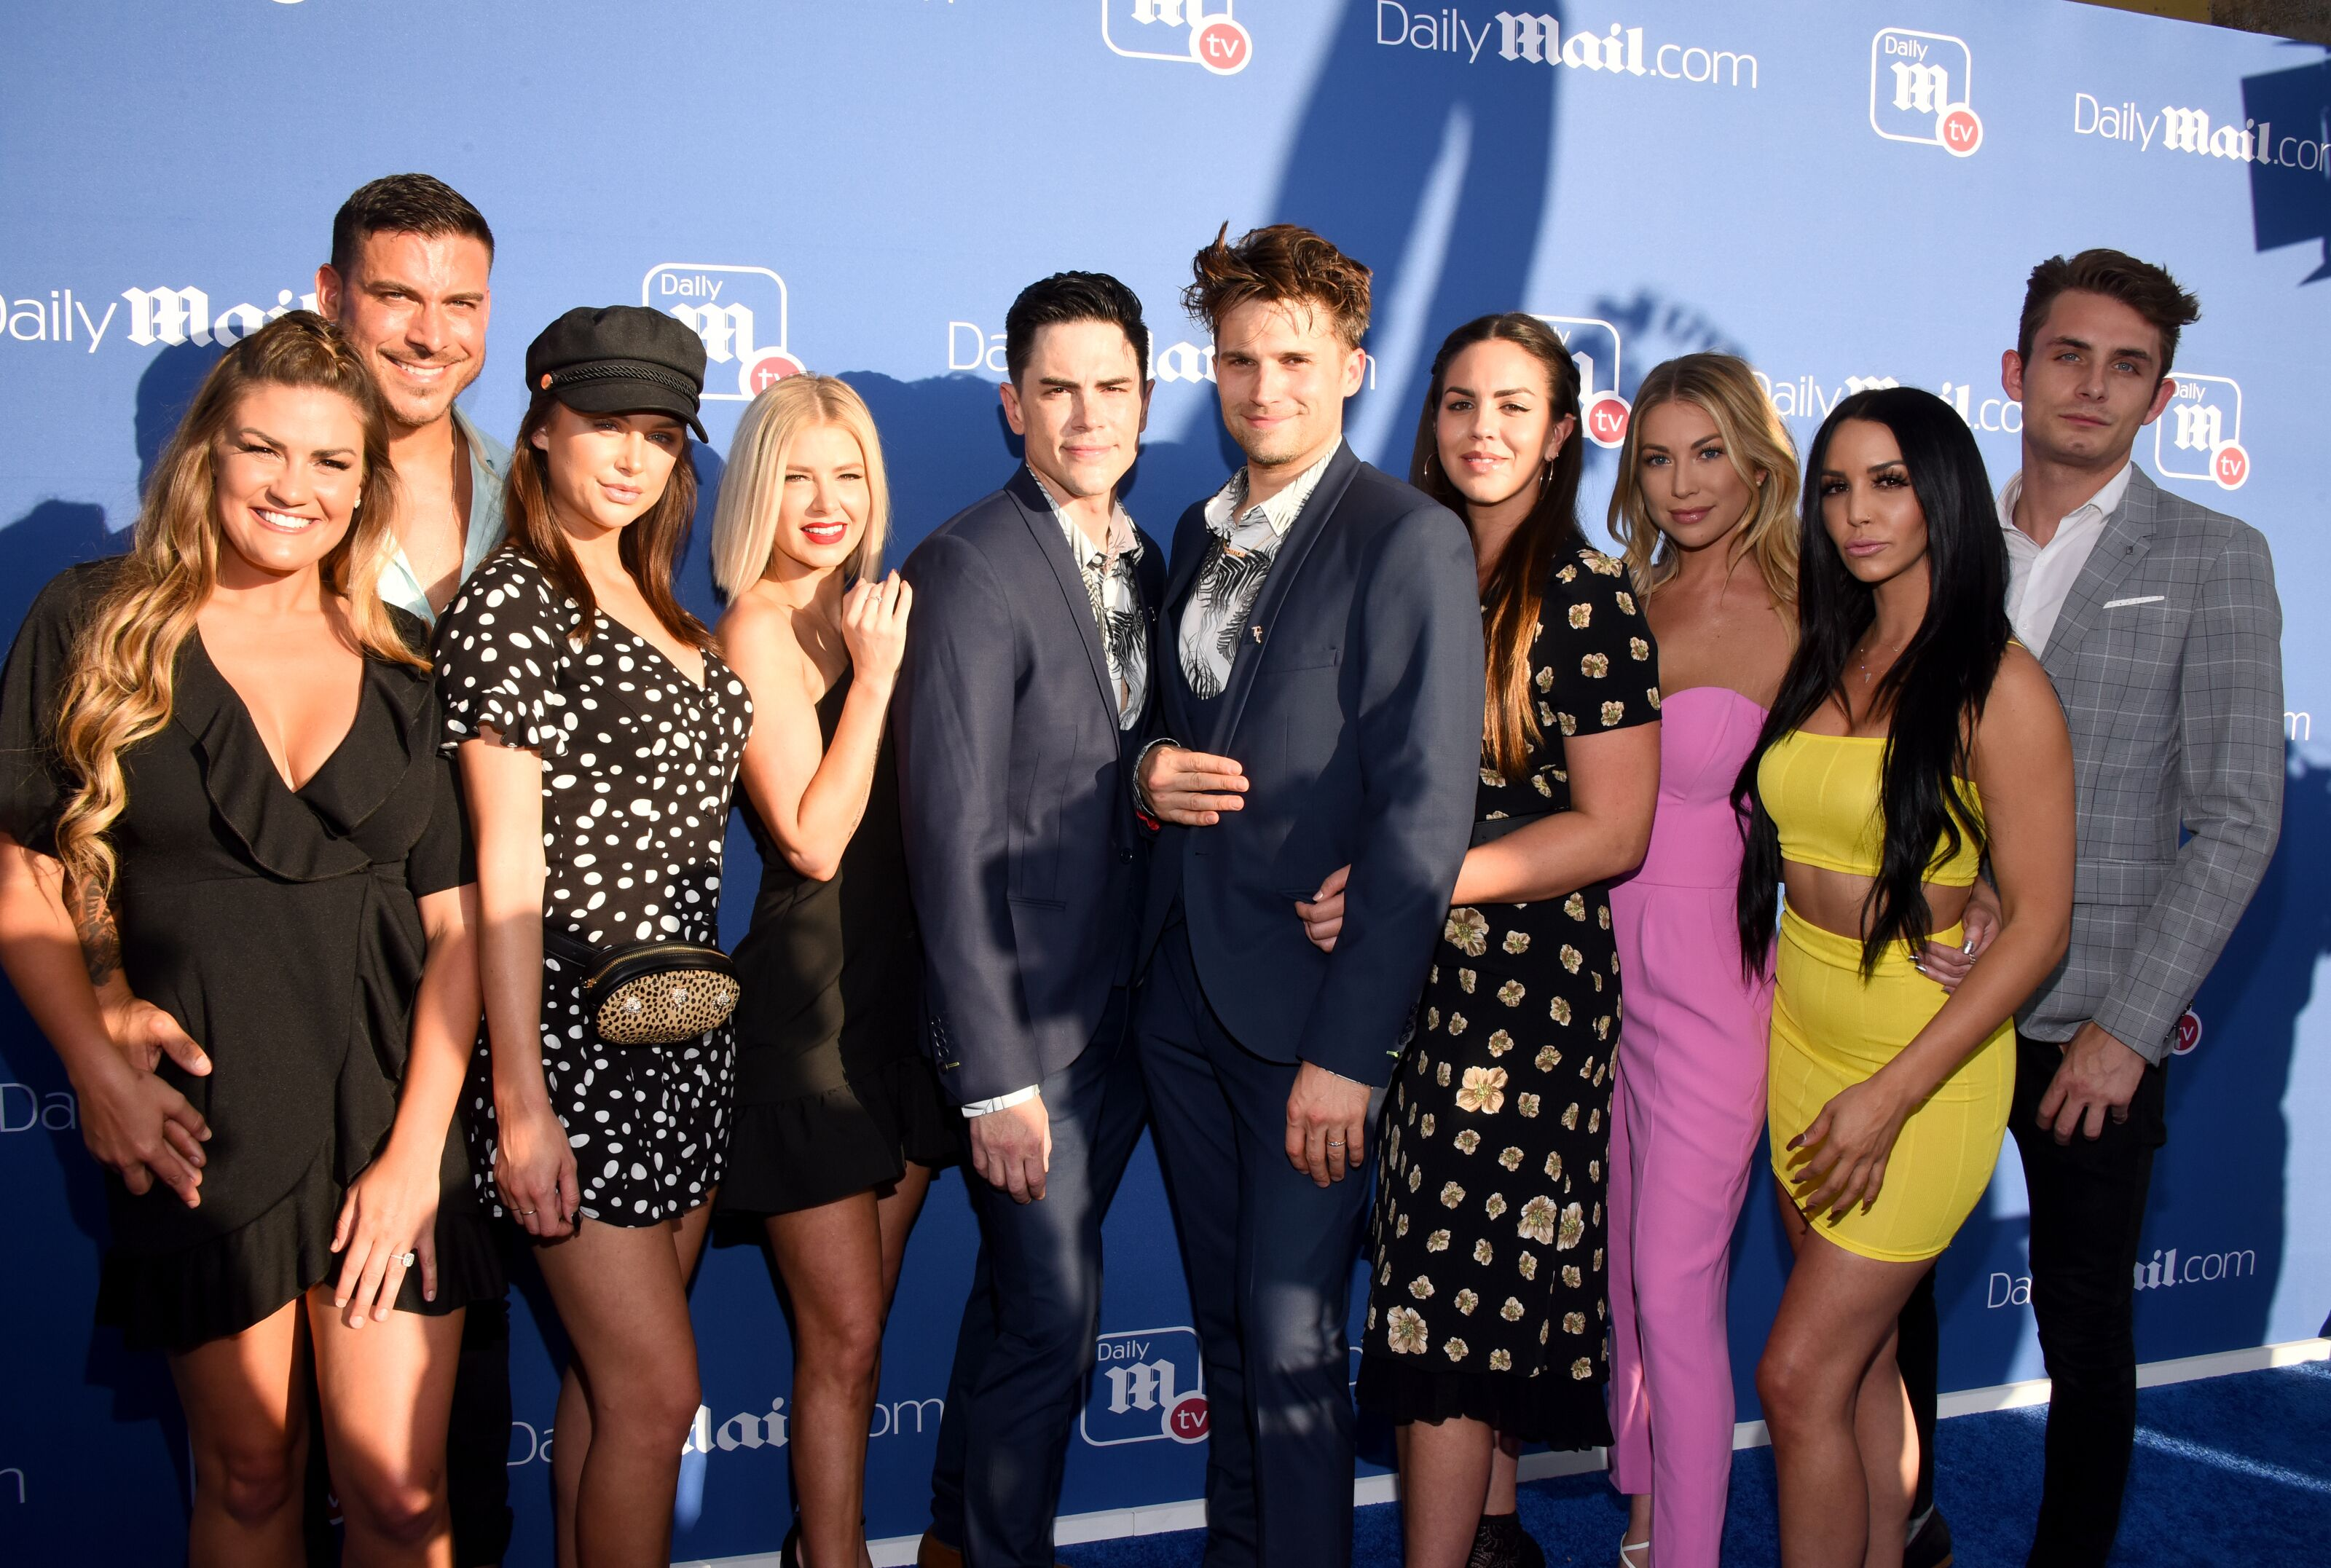 Vanderpump Rules: Um, Katie Maloney and Tom Schwartz aren't married?